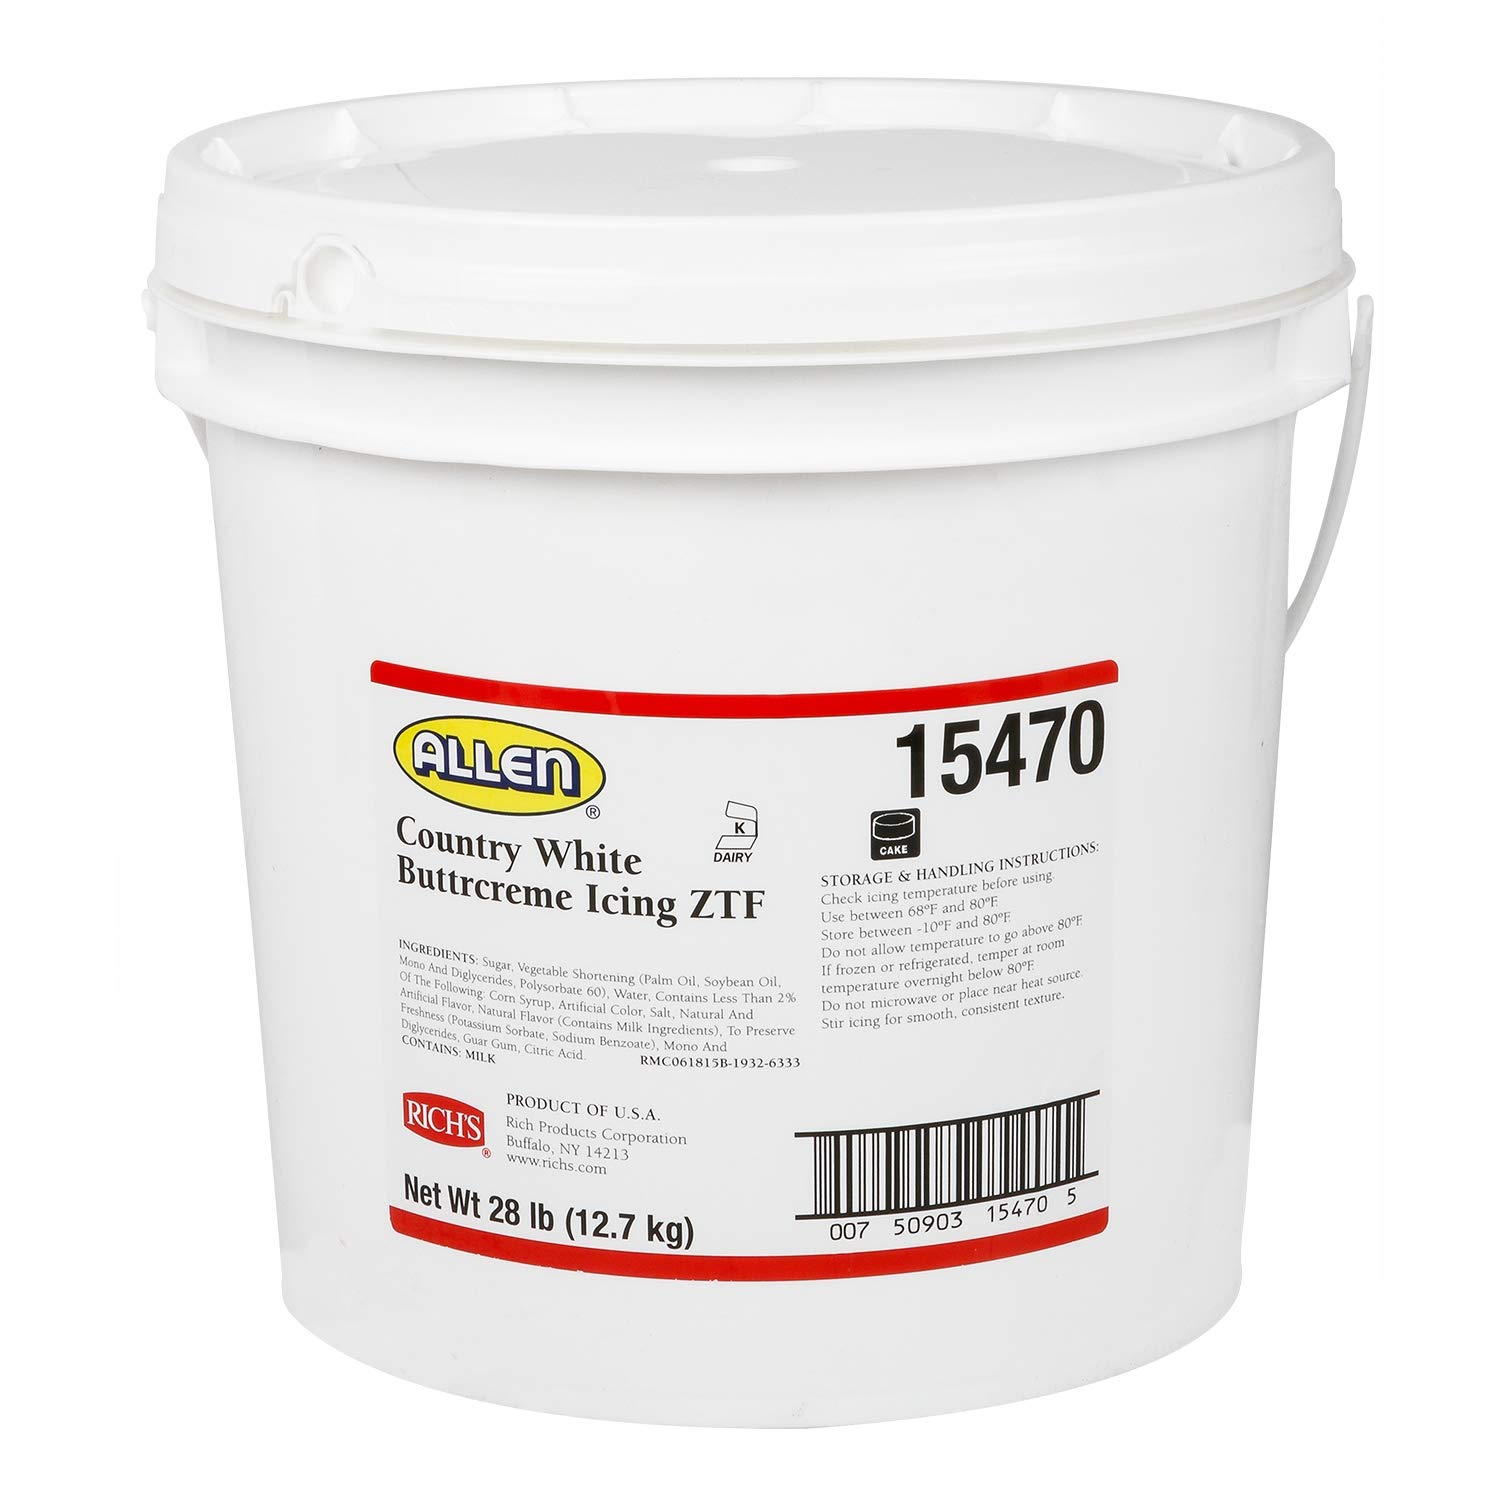 Rich's JW Allen Pre-Whipped Buttrcreme Icing ZTF, Country White, 15 lb